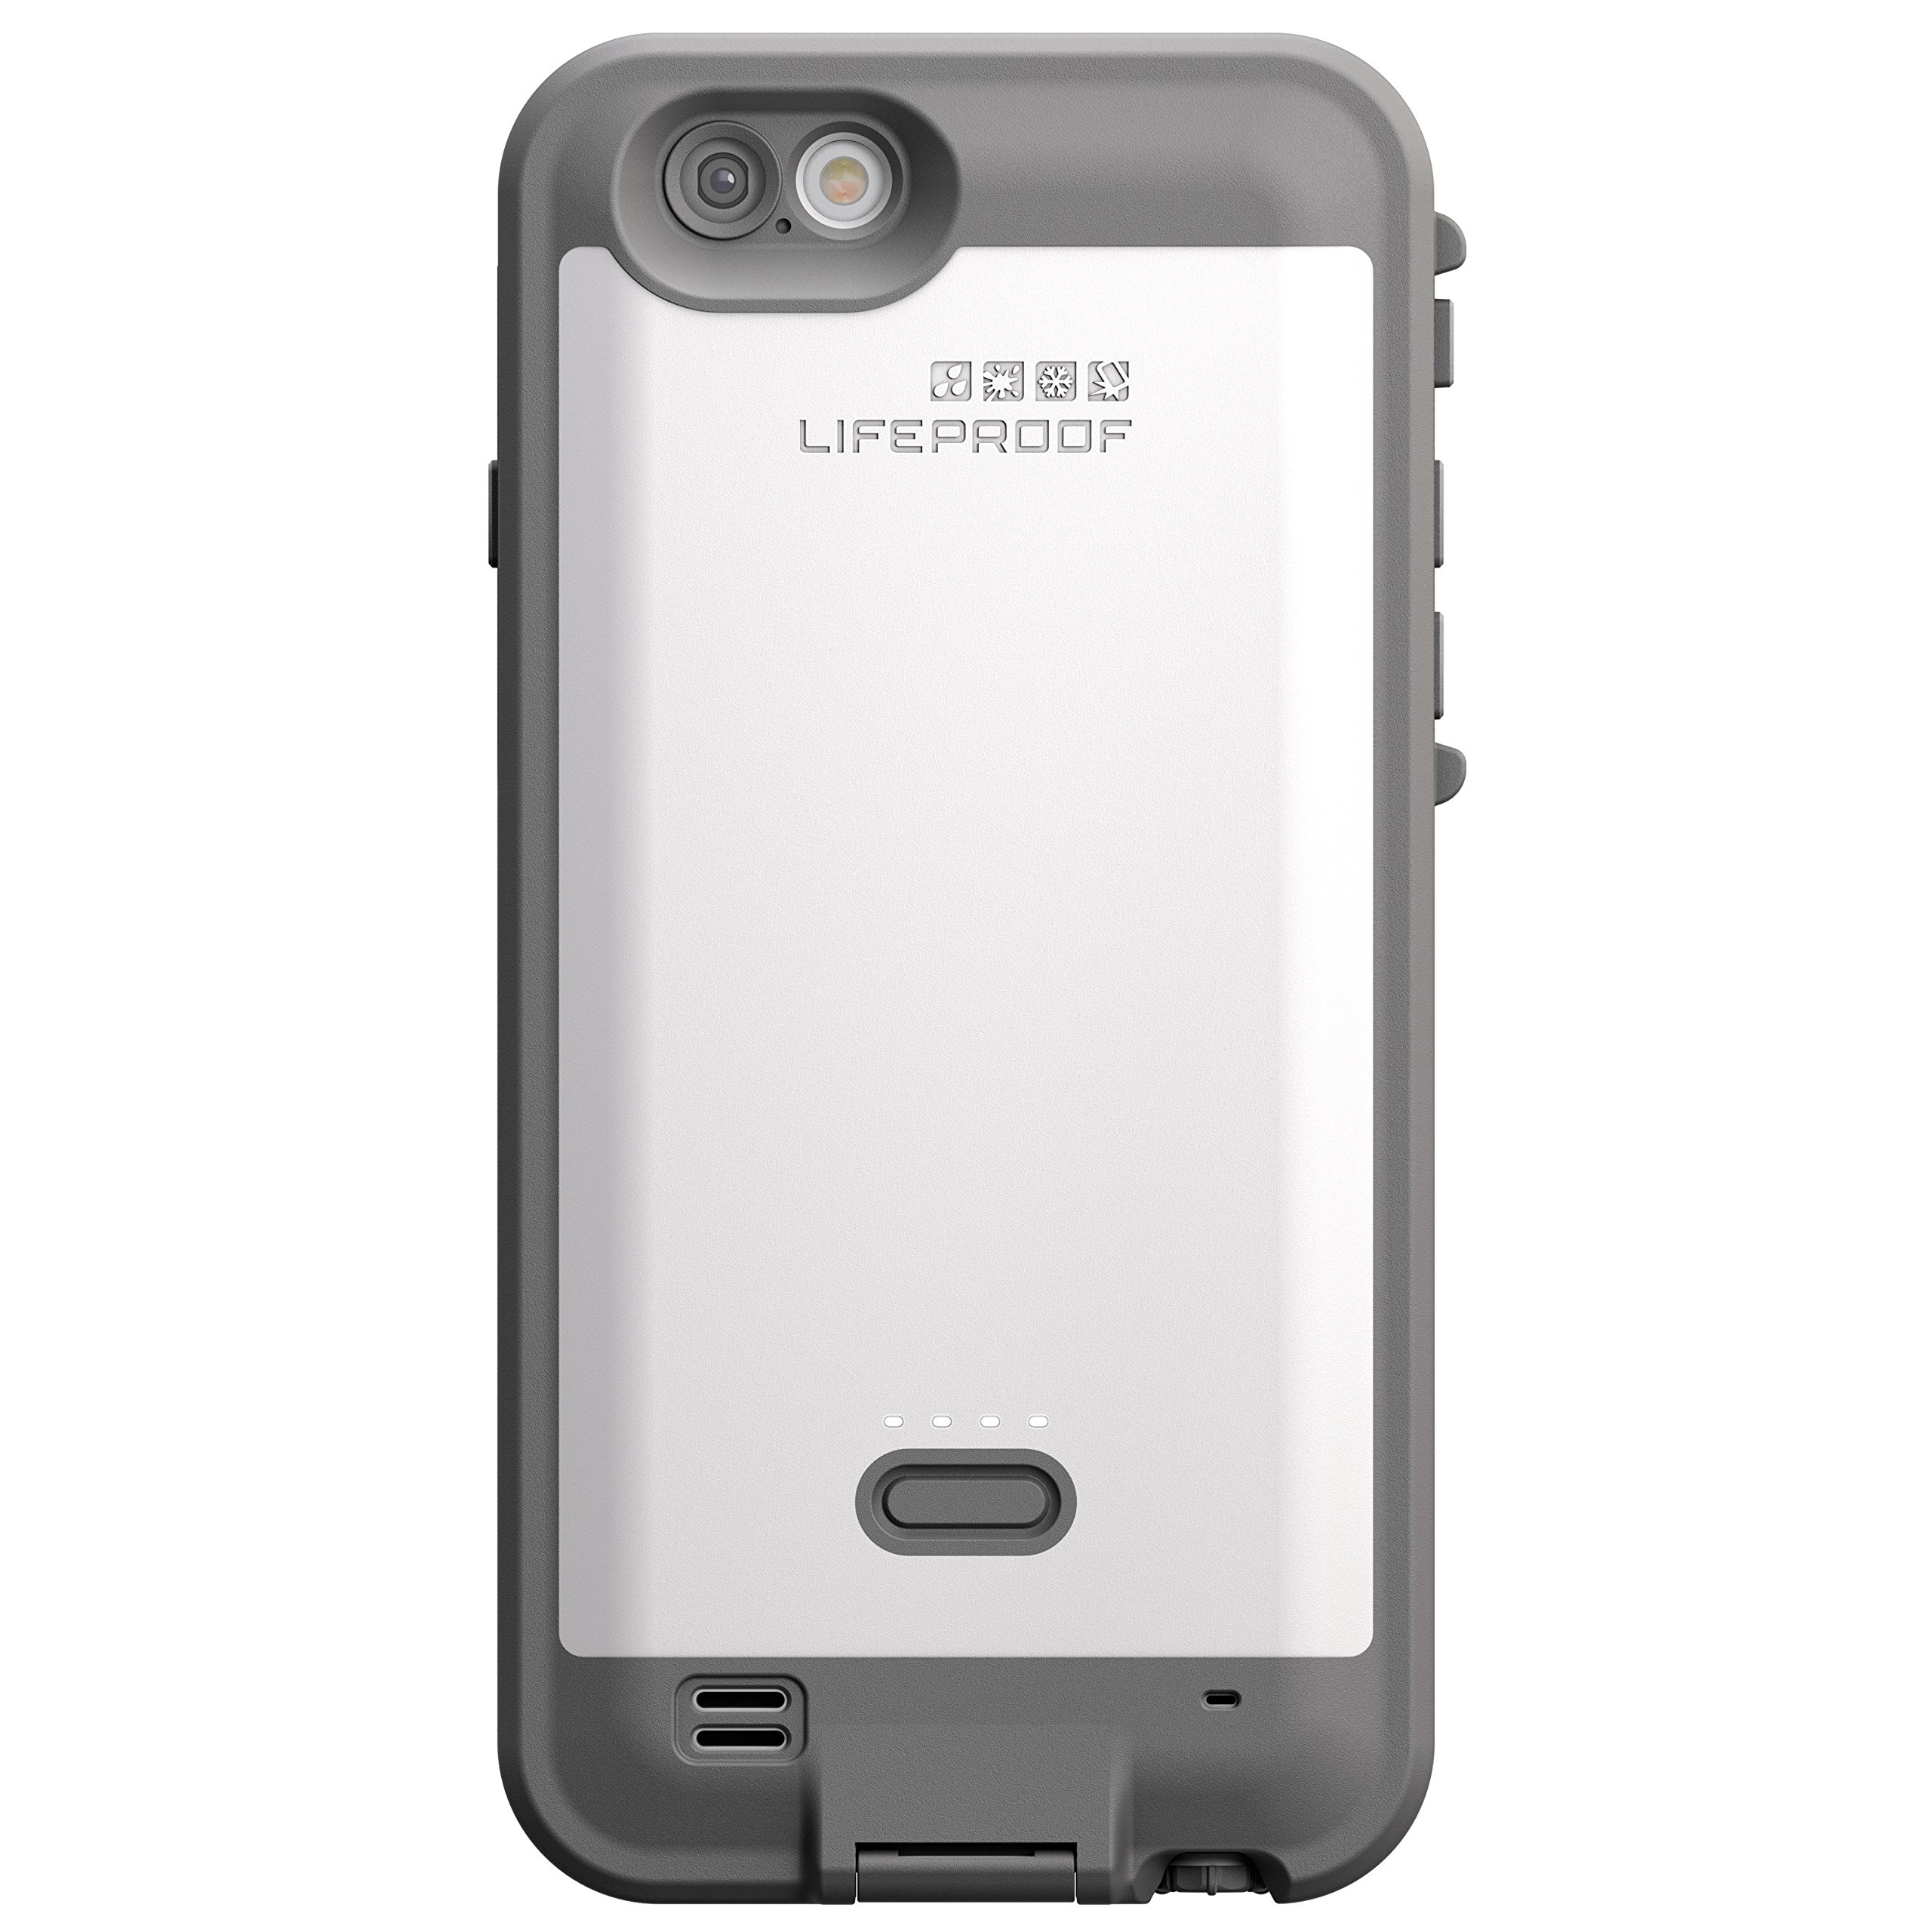 LifeProof FRE POWER iPhone 6 ONLY (4.7'' Version) Waterproof Battery Case - Retail Packaging - (BRIGHT WHITE/COOL GREY) (Discontinued by Manufacturer)